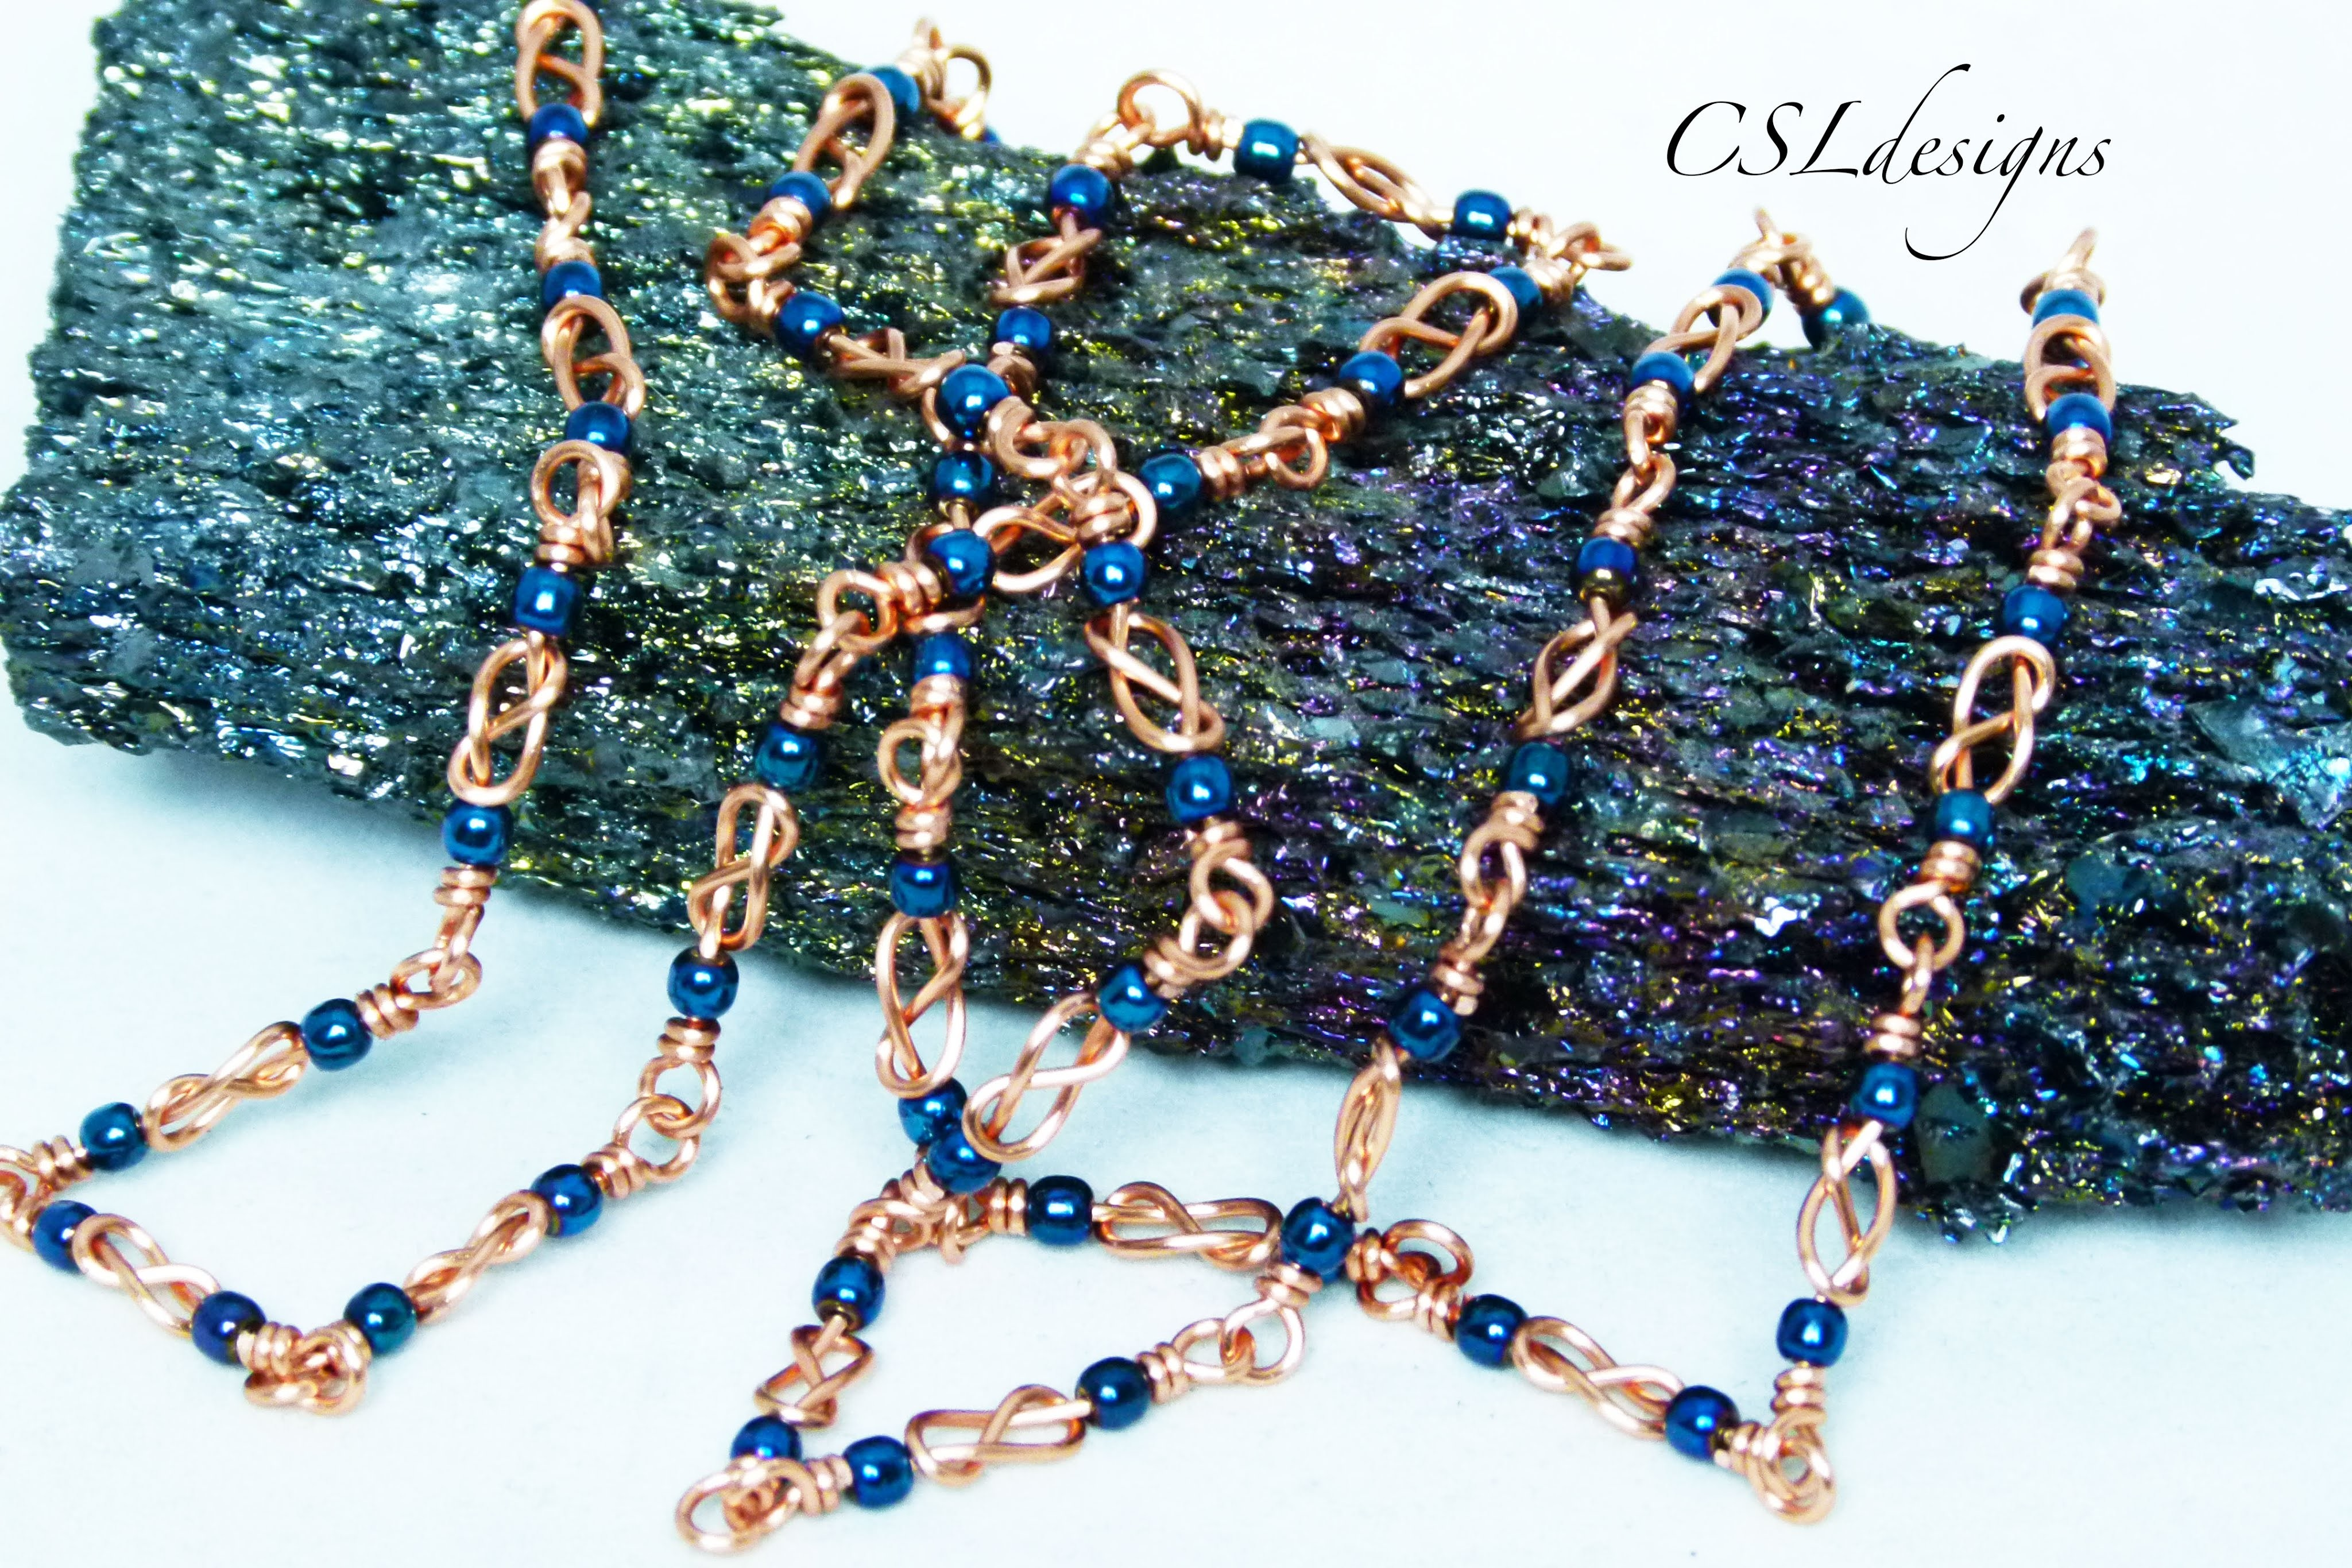 Celtic knot wirework chain ⎮ Make your own chain series